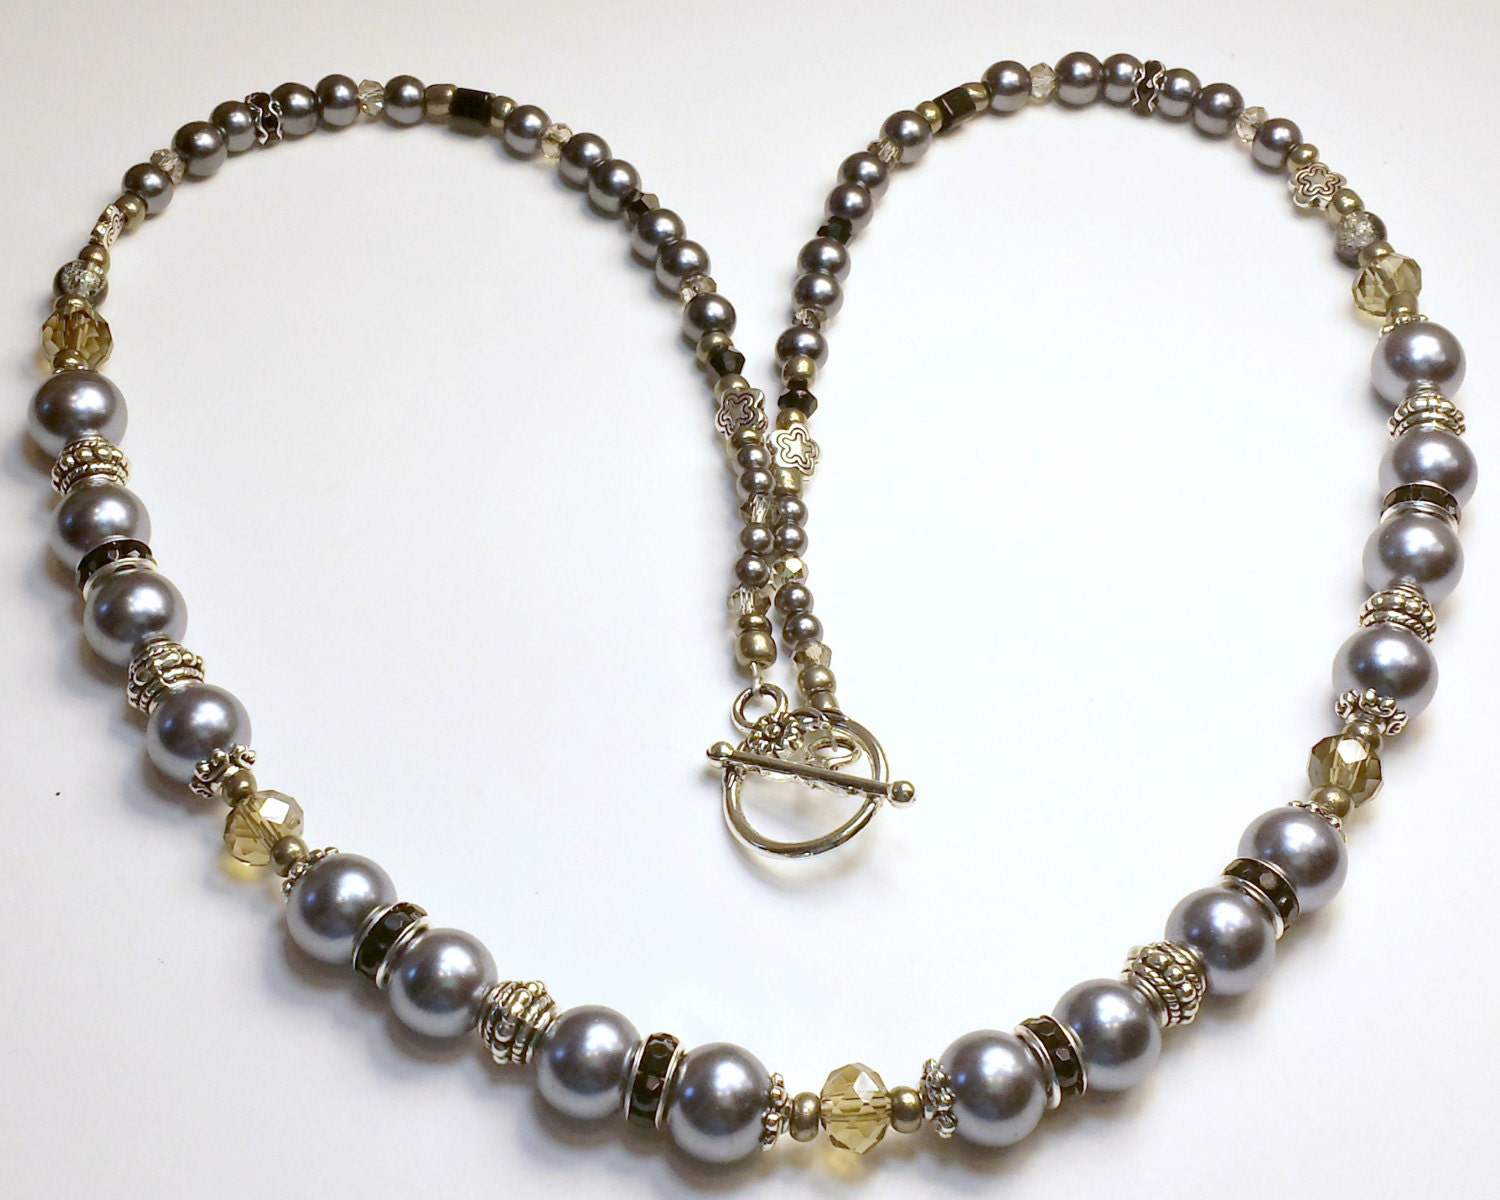 beaded necklace black and silver 24 inch necklace with silver